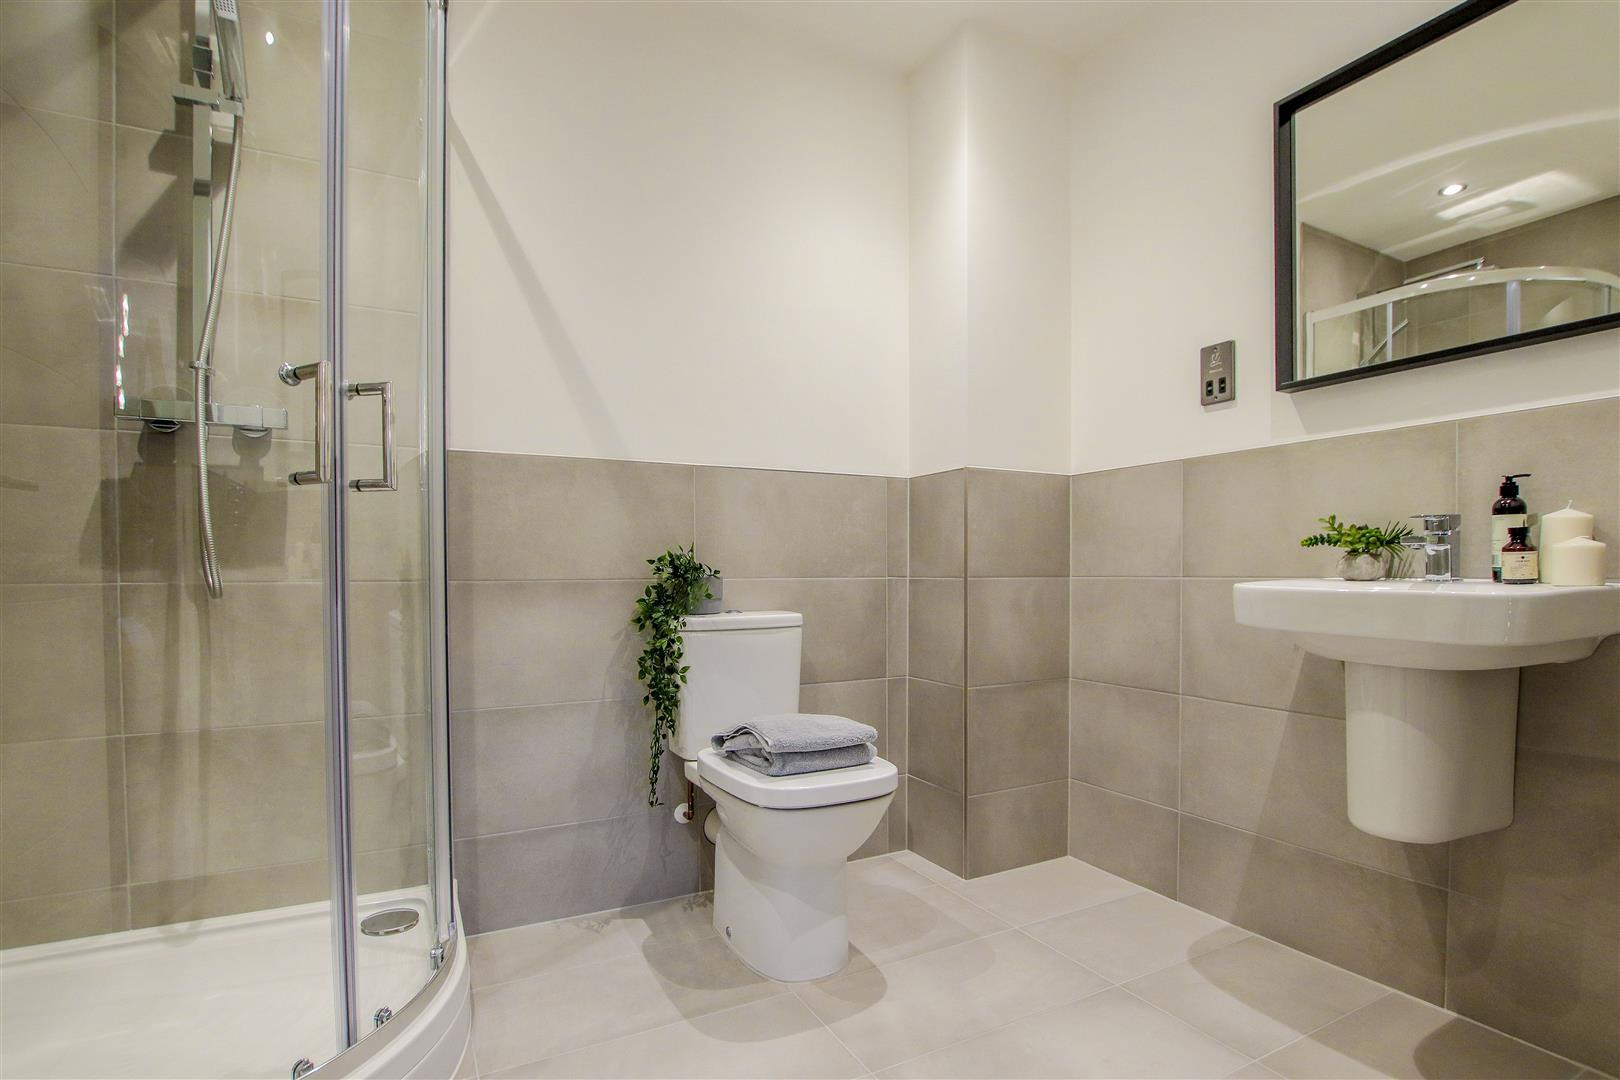 2 Bedroom Apartment For Sale - 19.JPG